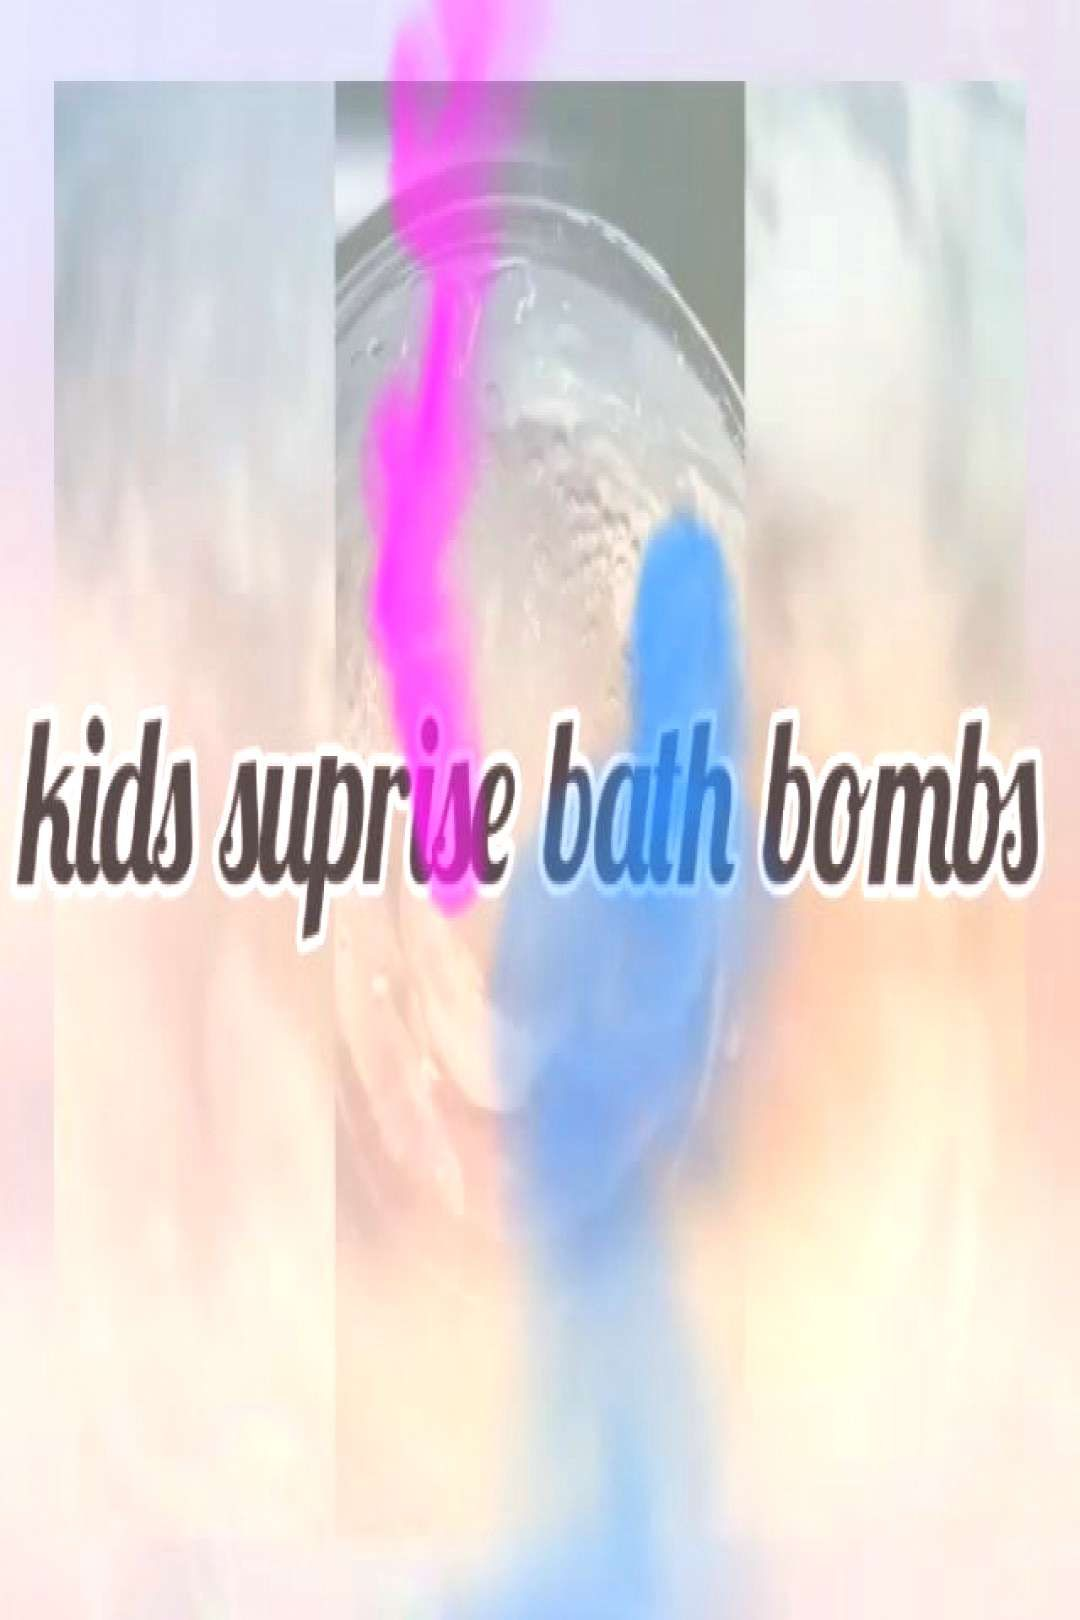 #kidsgifts #vanilla #scented #bombs #gifts #scotl #kids #bath #toy #uk Vanilla scented Kids toy bath bombs kidsgifts kids gifts uk scotlYou can find Kids gifts and more on our website.Vanilla scented Kids toy bath bombs kidsgifts kids gifts uk ...